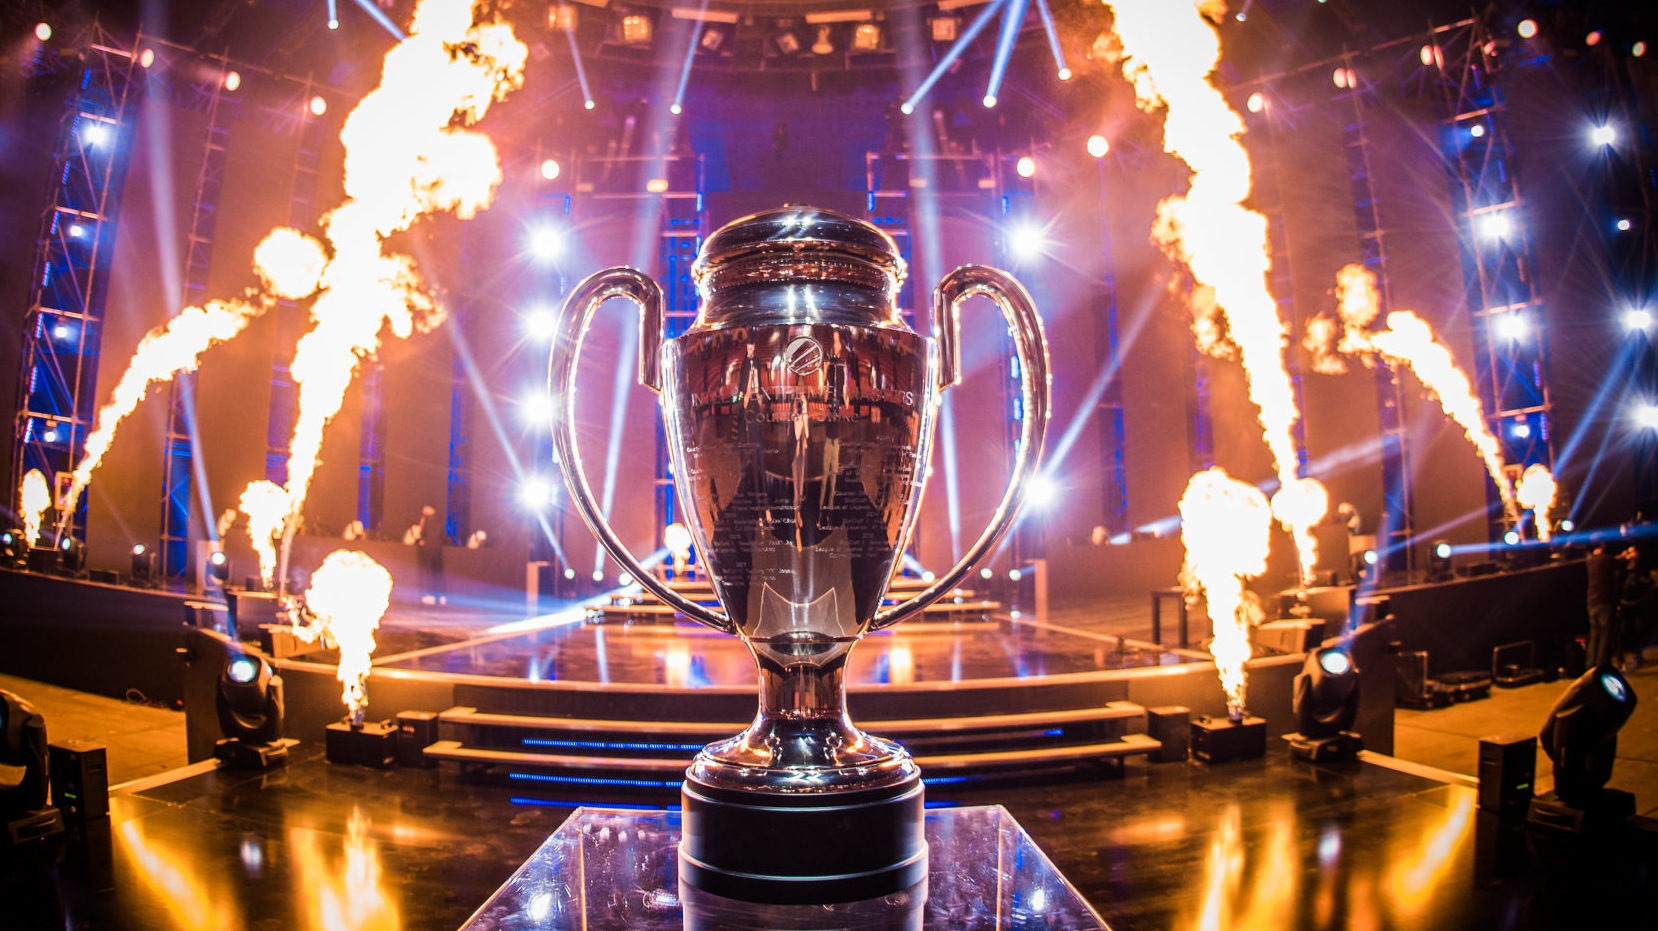 ESL reveals the first round matchups for IEM Katowice 2019